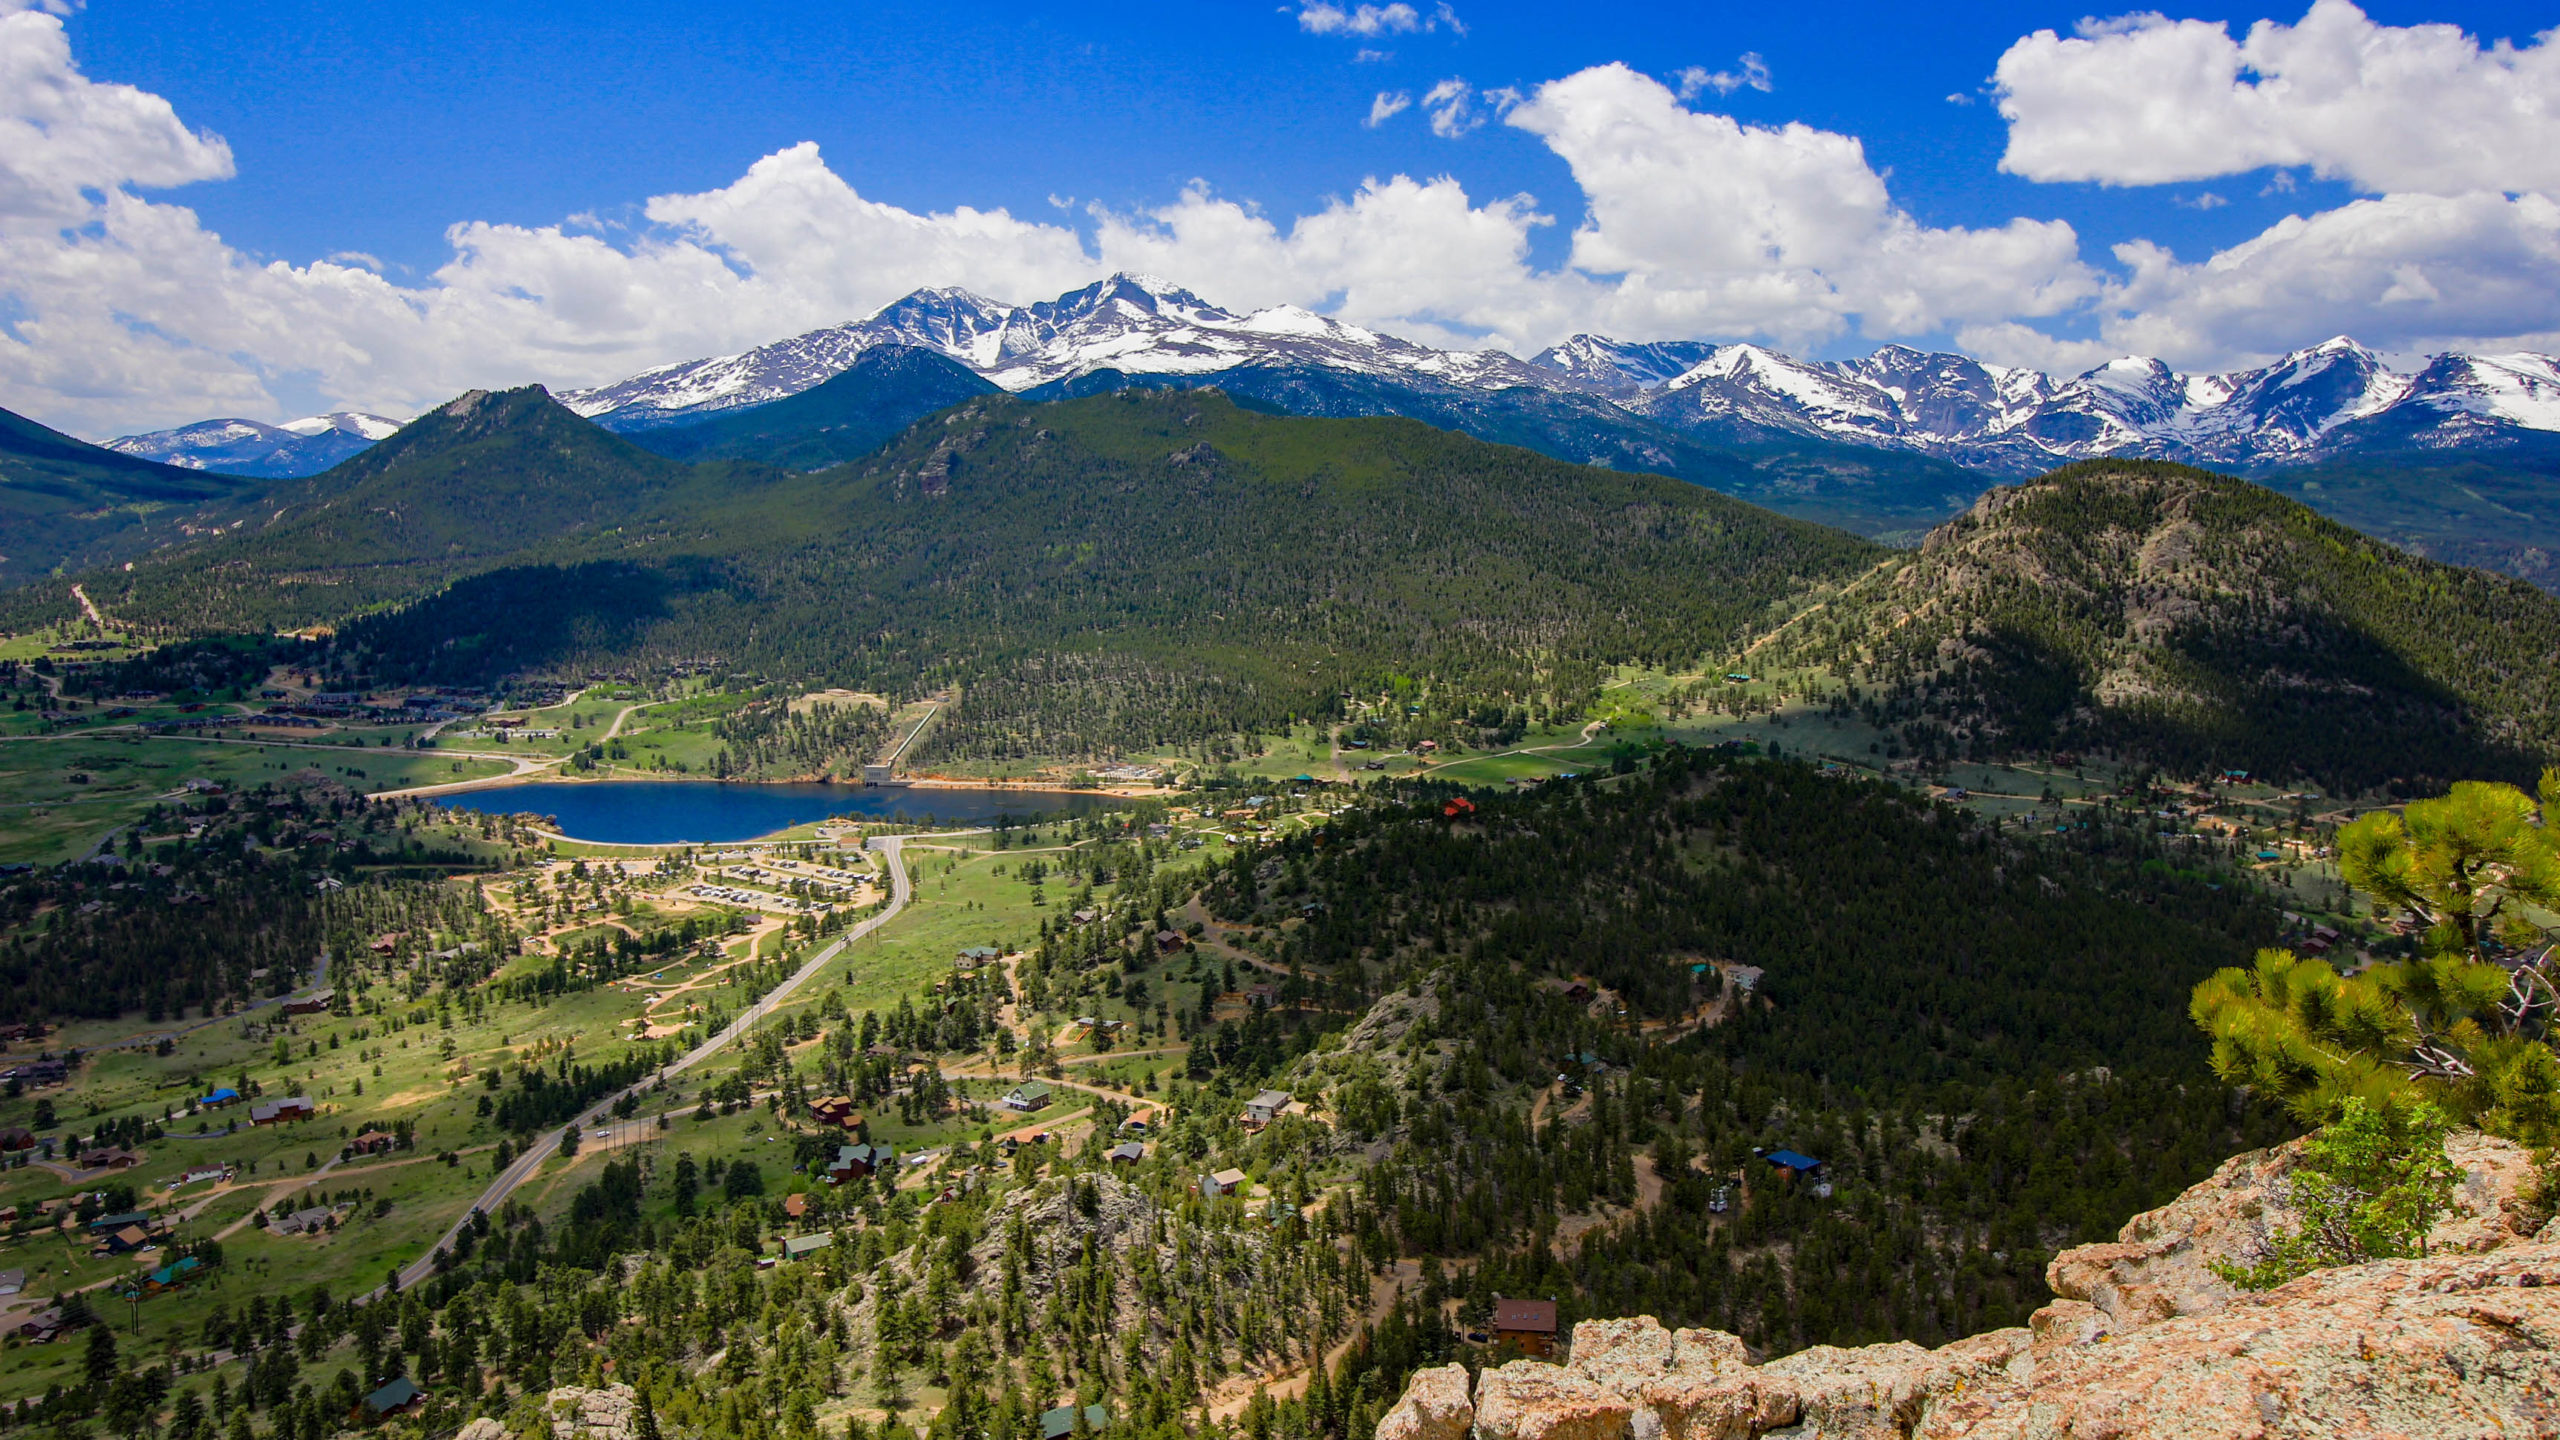 This is an image from higher up over Prospect Mountain looking south to southwest showing Marys Lake, Lilly Mountain, the Indian Peaks, Estes Cone, Mount Meeker, Longs Peak, Pagoda Mountain, Chiefs Head, Powell Mountain, Taylor Peak, Otis Peak, Hallet Peak and Flattop Mountain at the extreme right with Giant Track in its foreground.